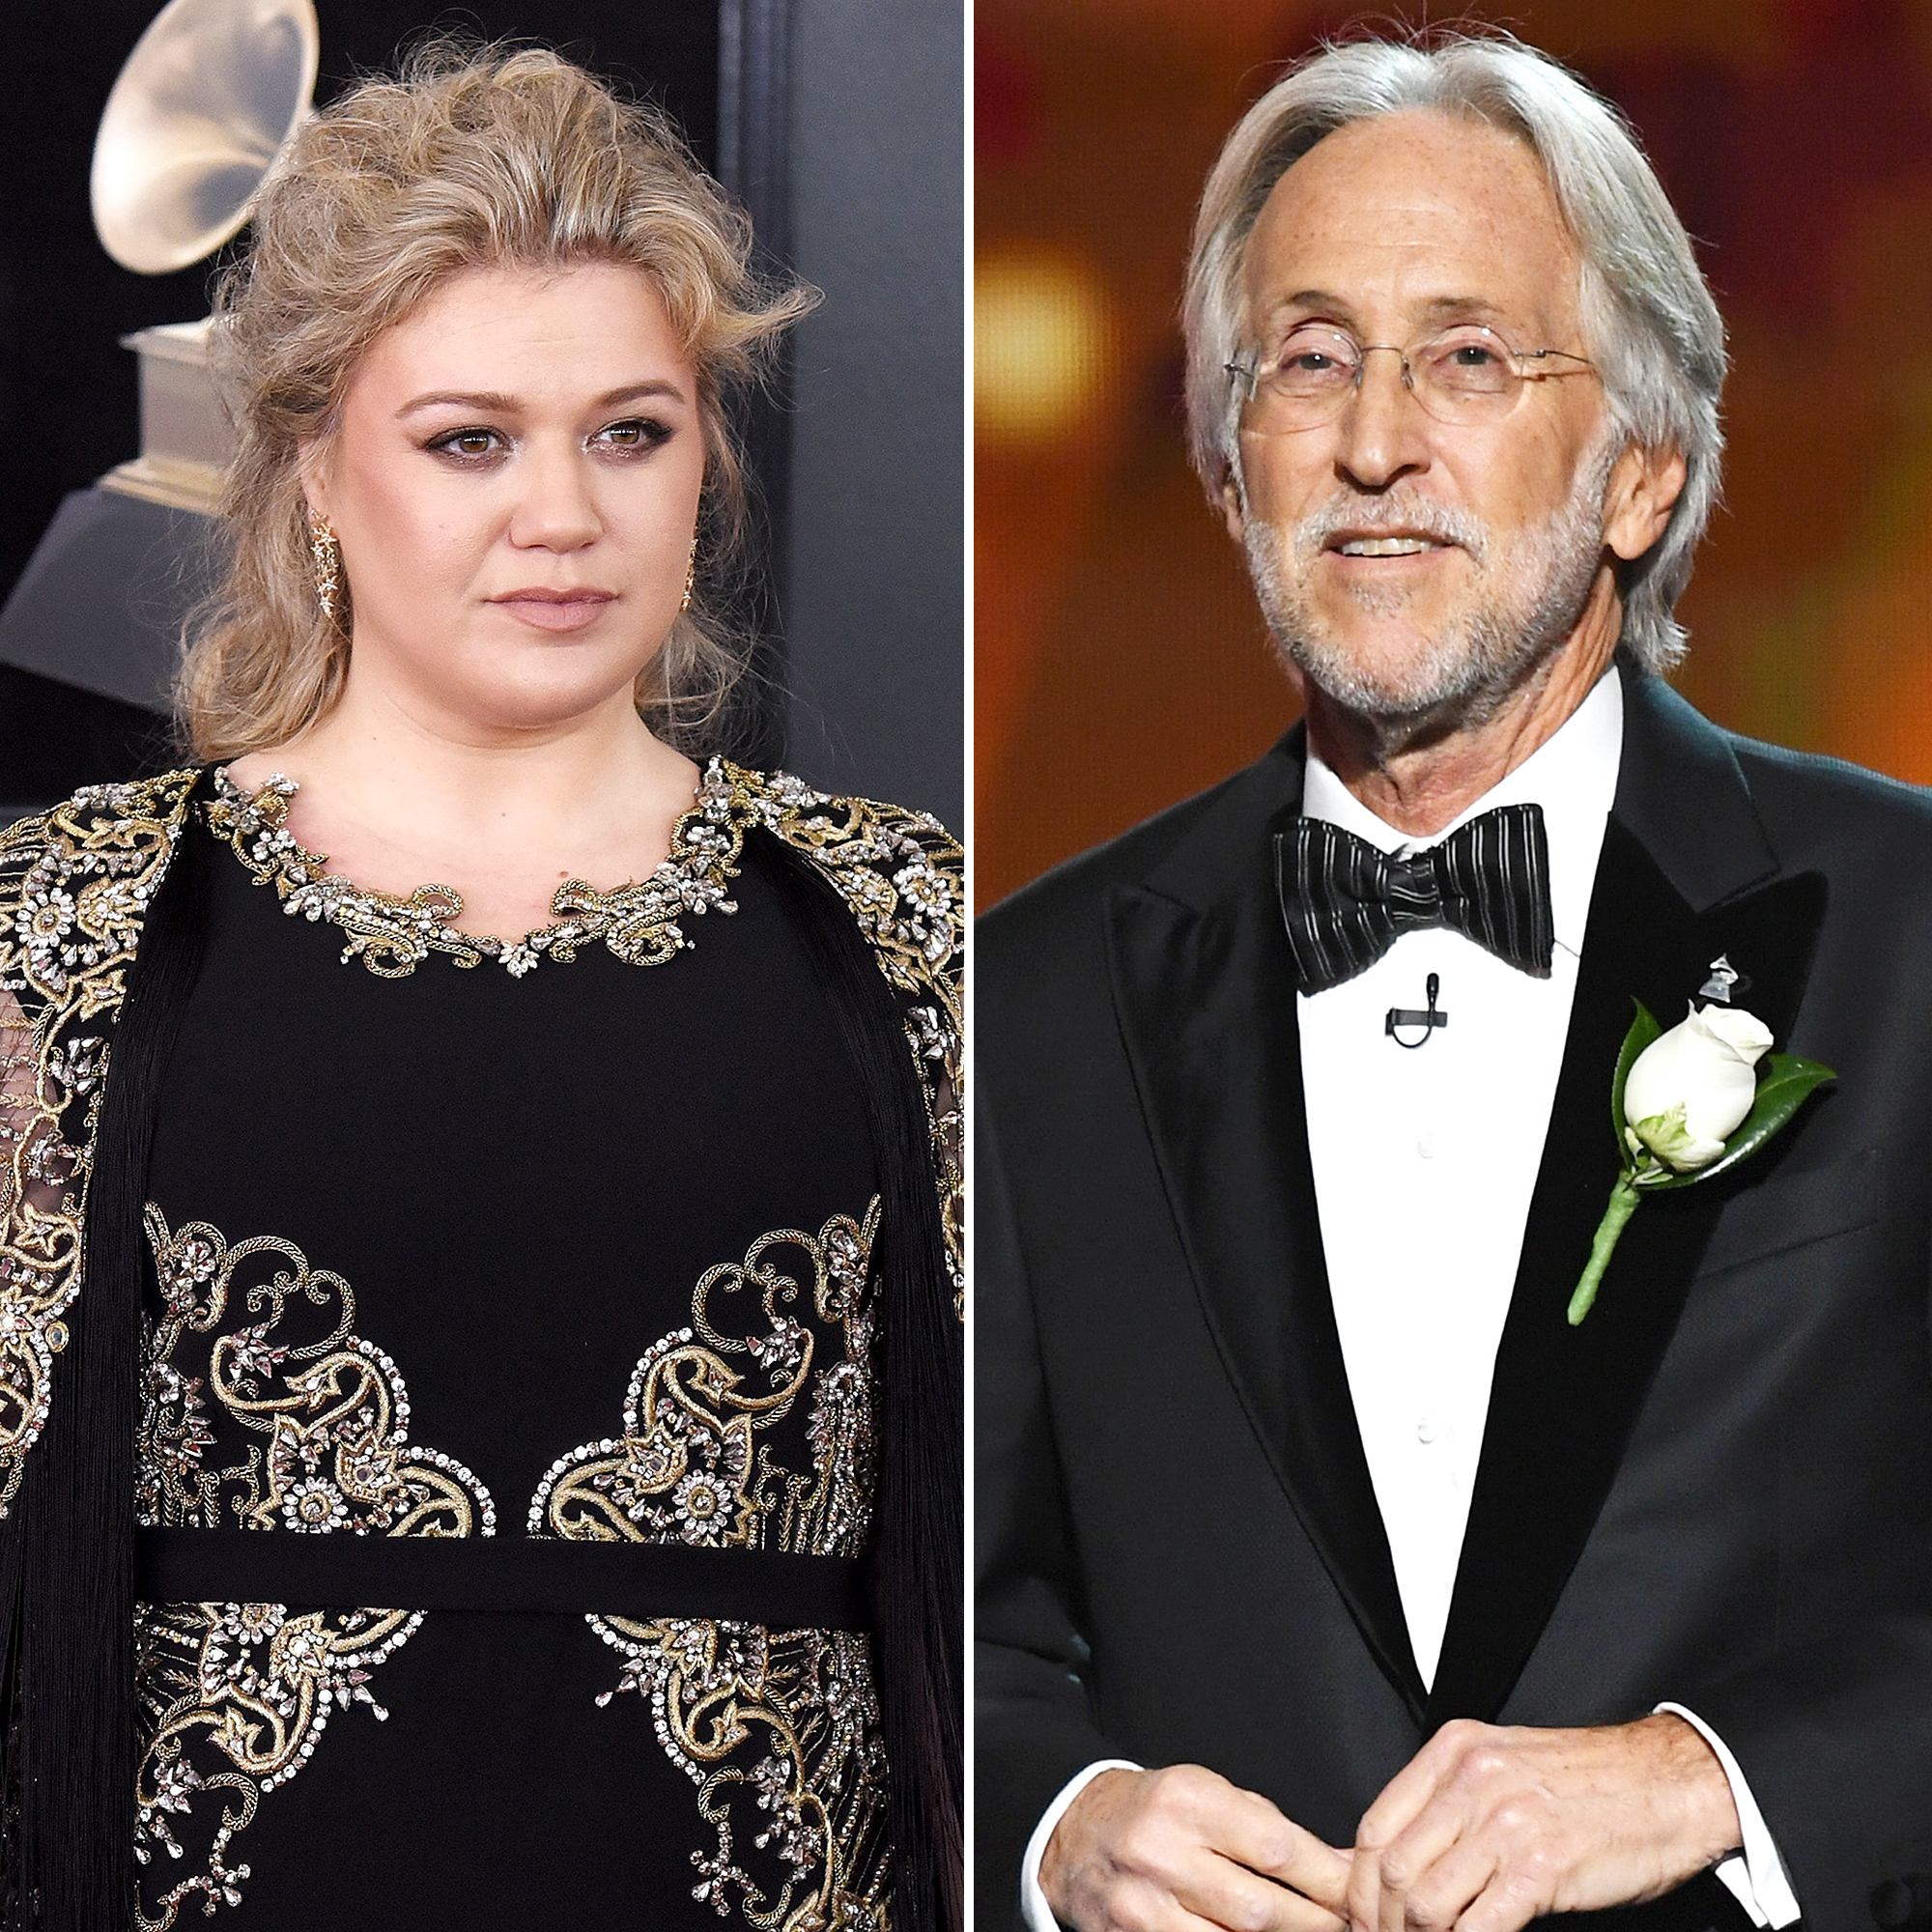 Grammy Chief Neil Portnow Walks Back 'Women Need to Step Up' Comment